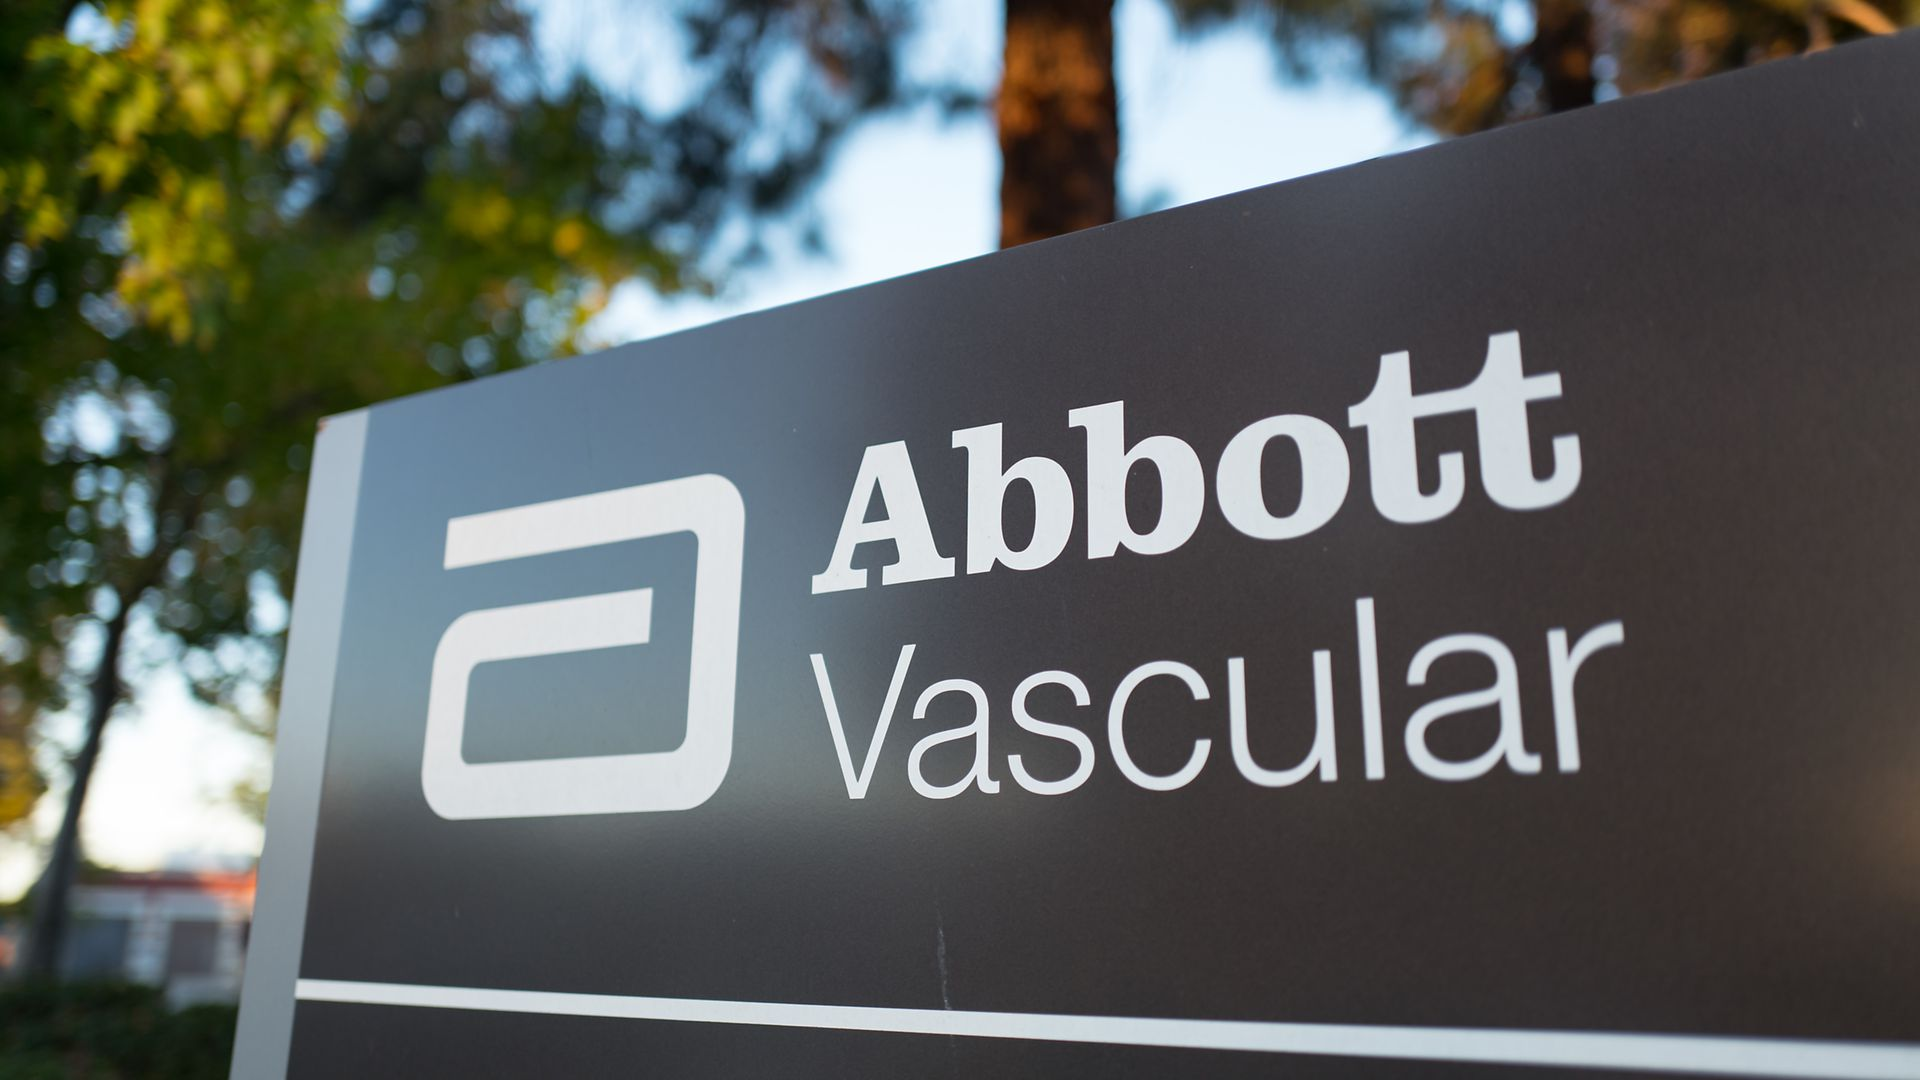 The headquarters sign of Abbott Vascular.